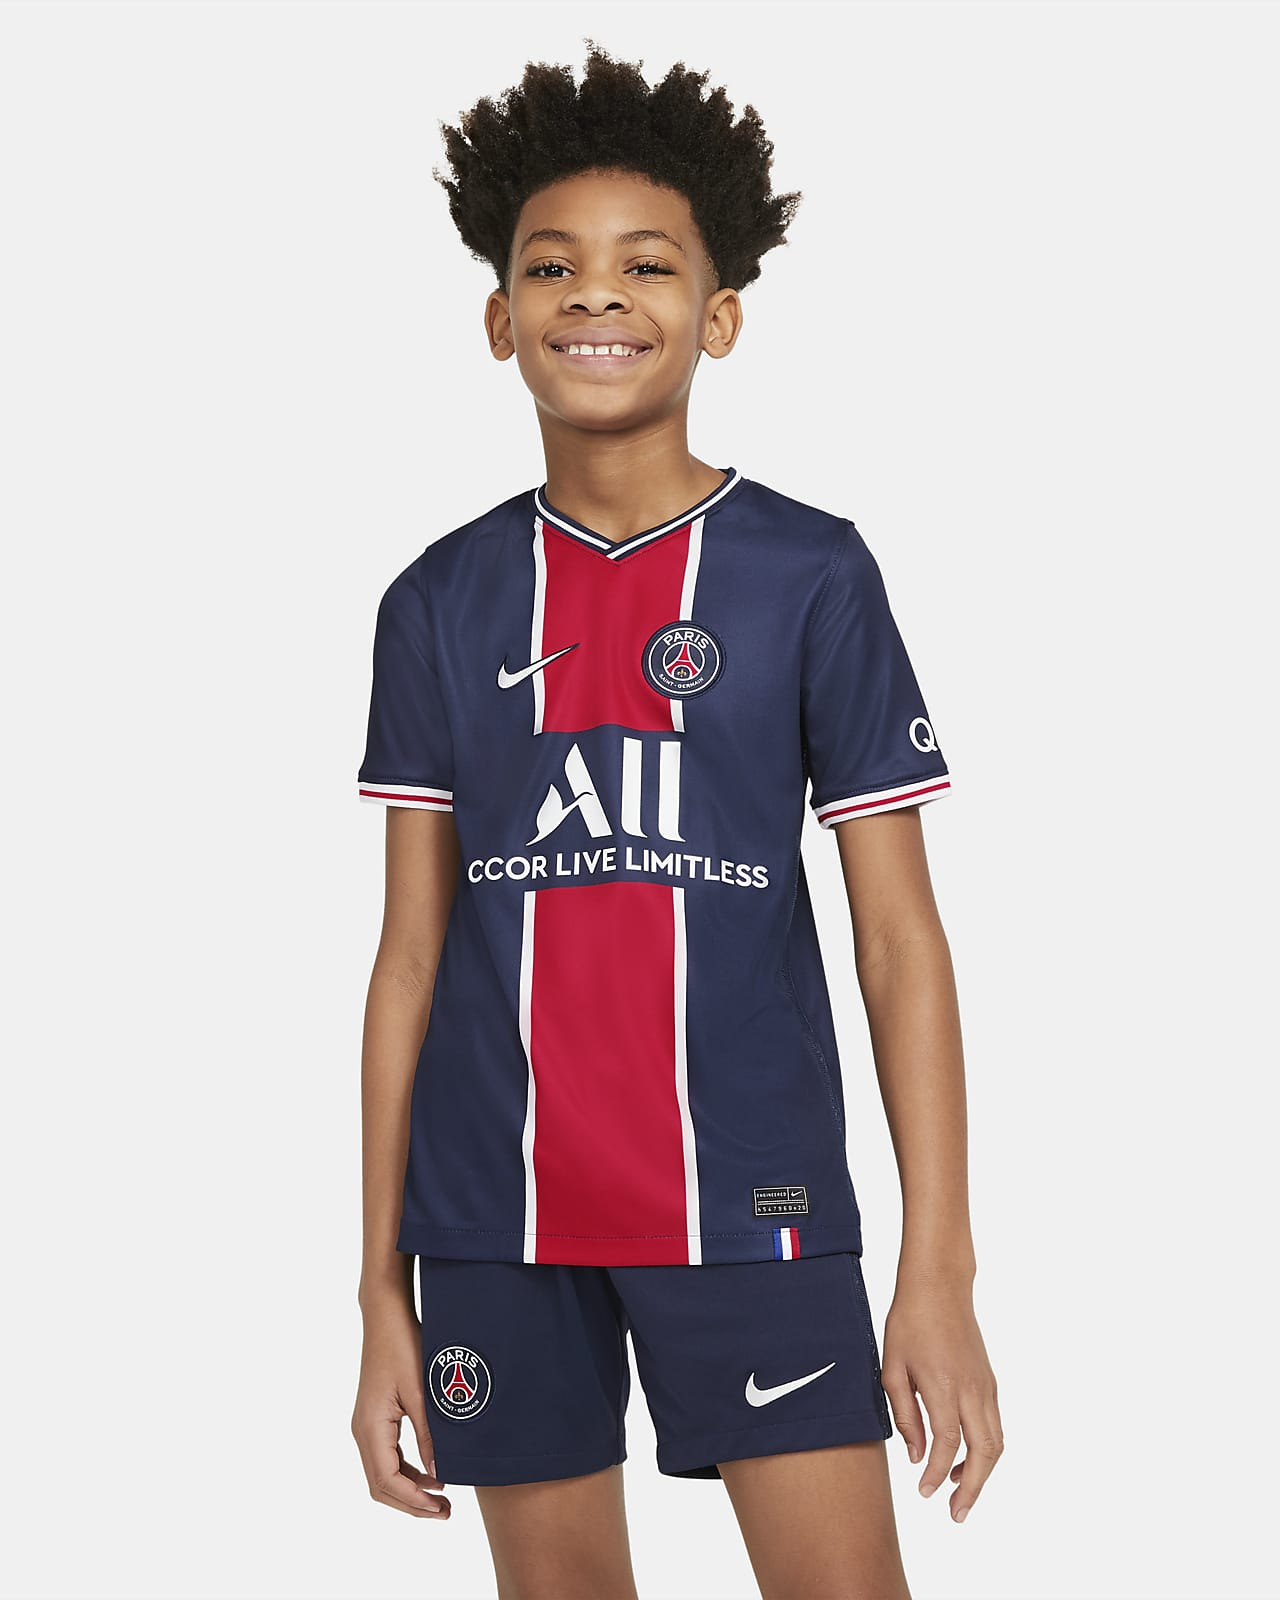 Maillot de football Paris Saint-Germain 2020/21 Stadium Domicile pour Enfant plus âgé